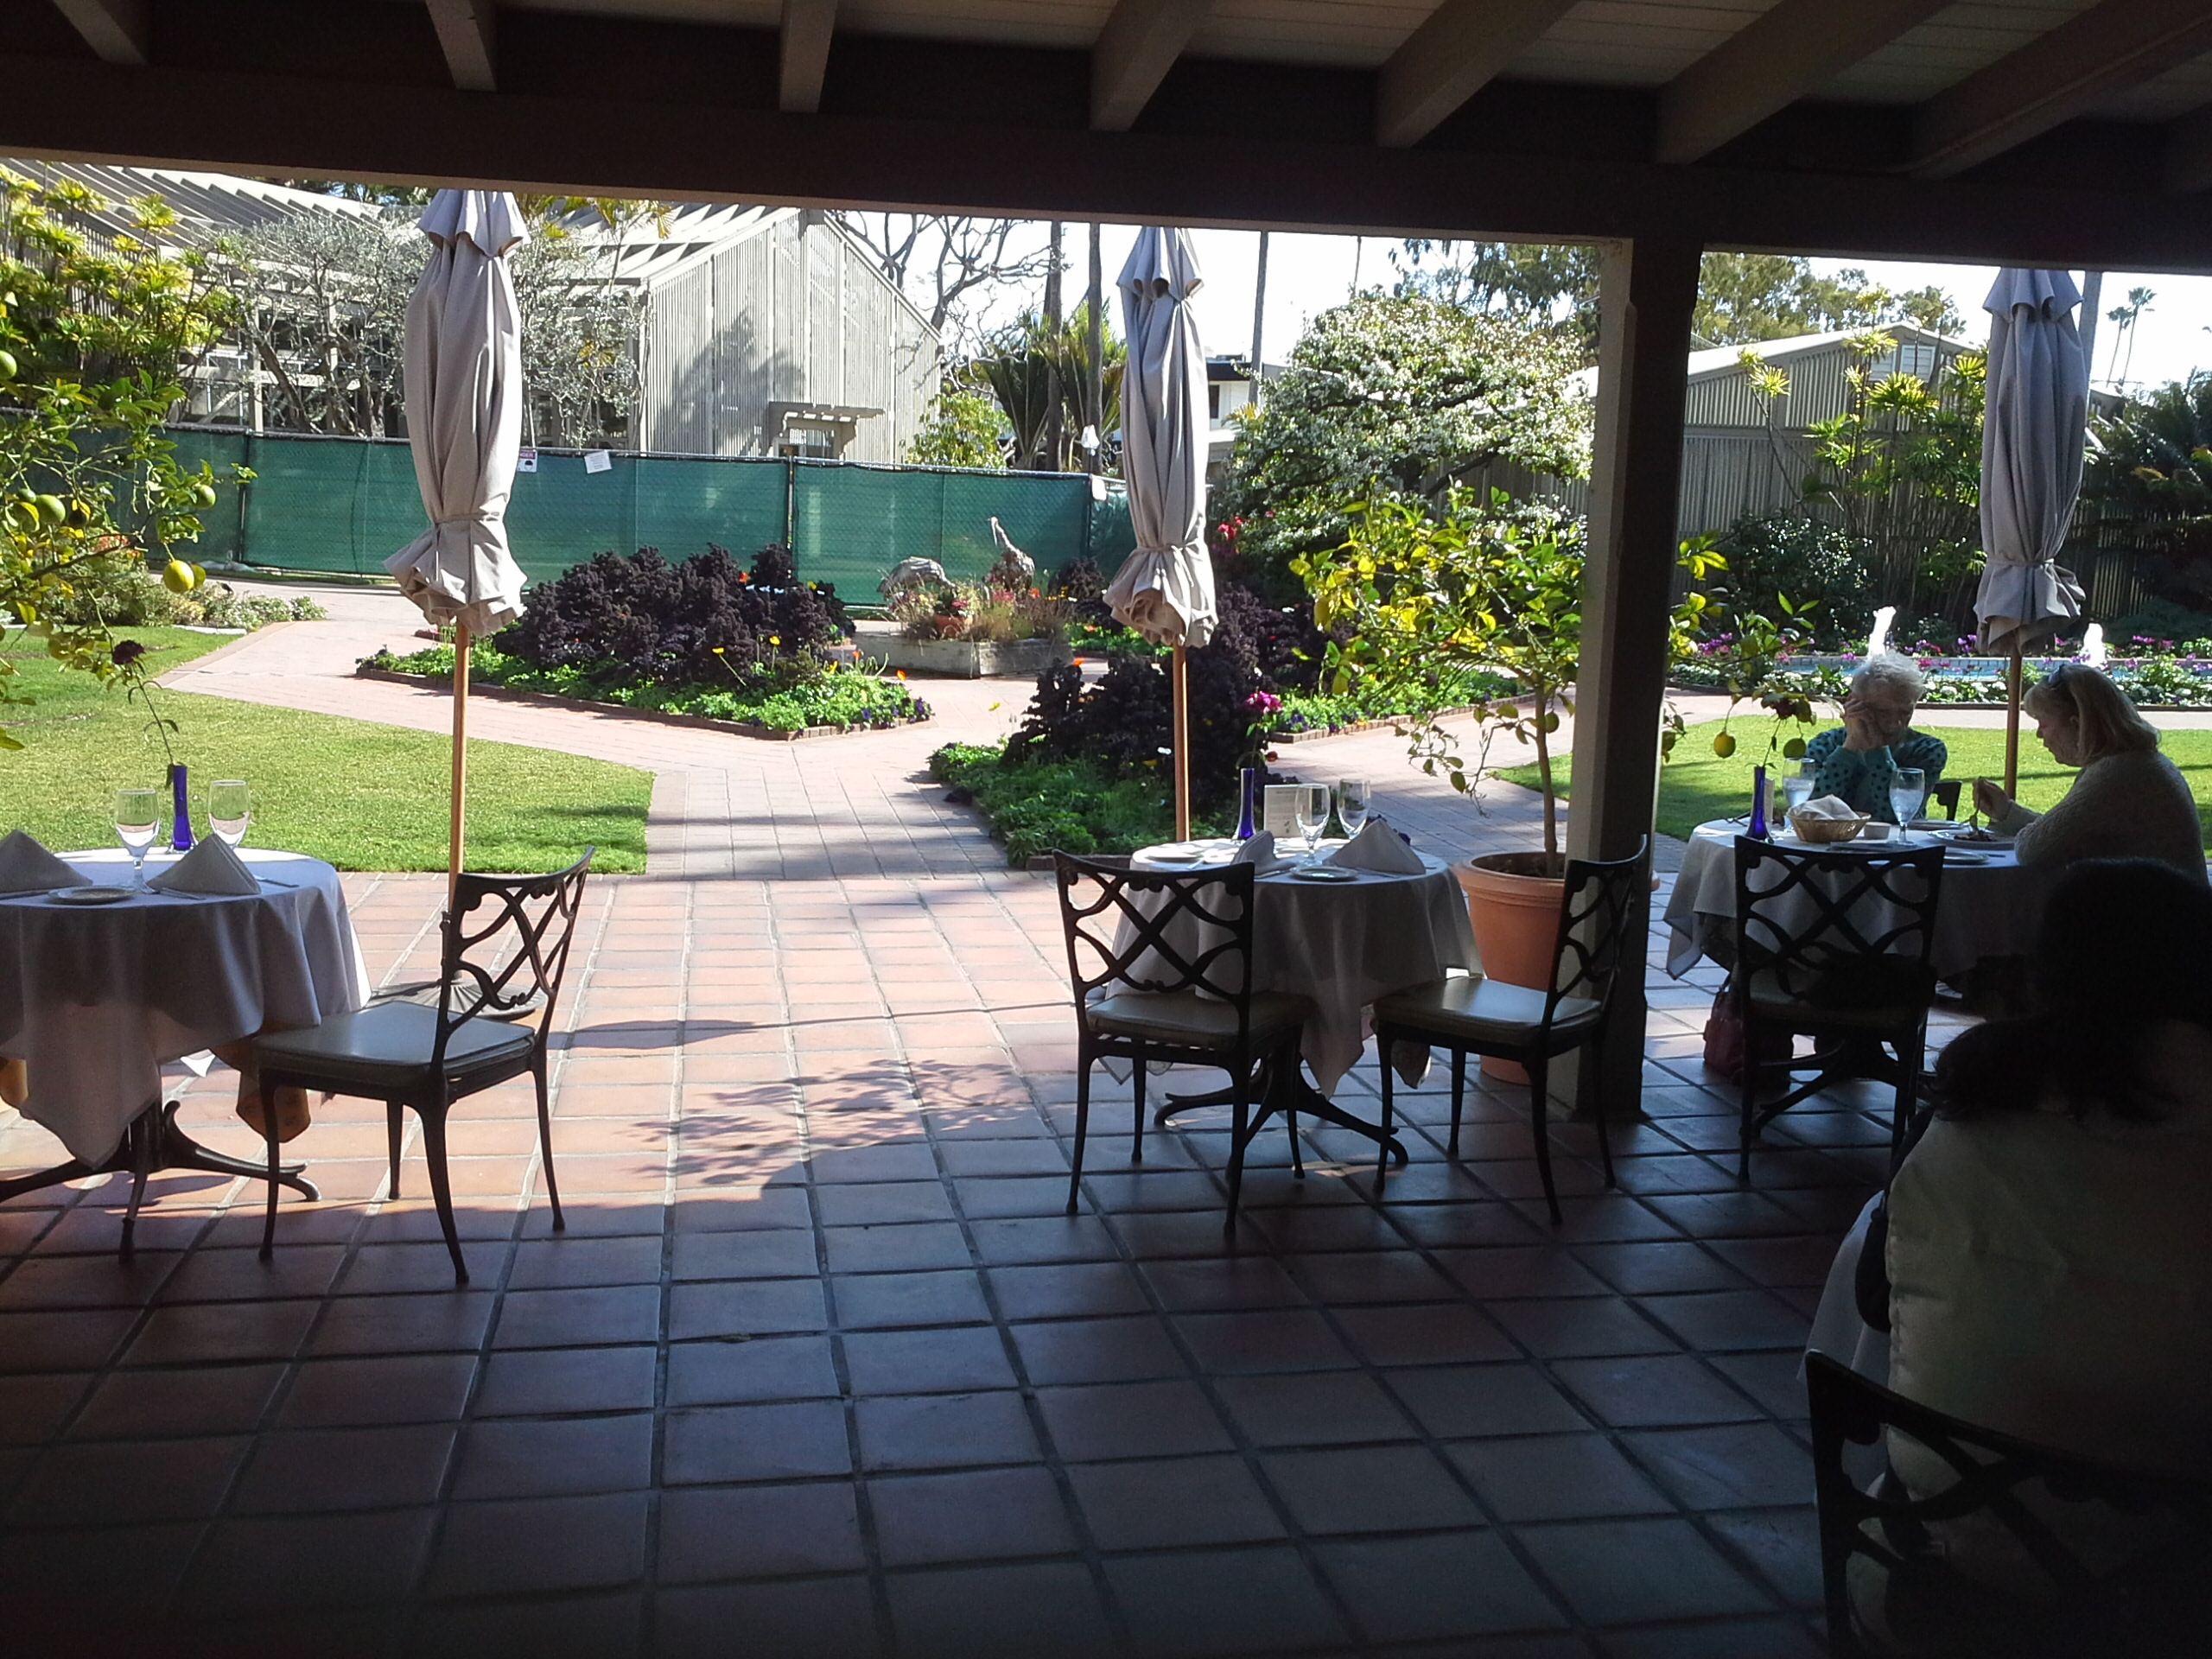 Cafe jardin corona del mar california for Cafe jardin corona del mar